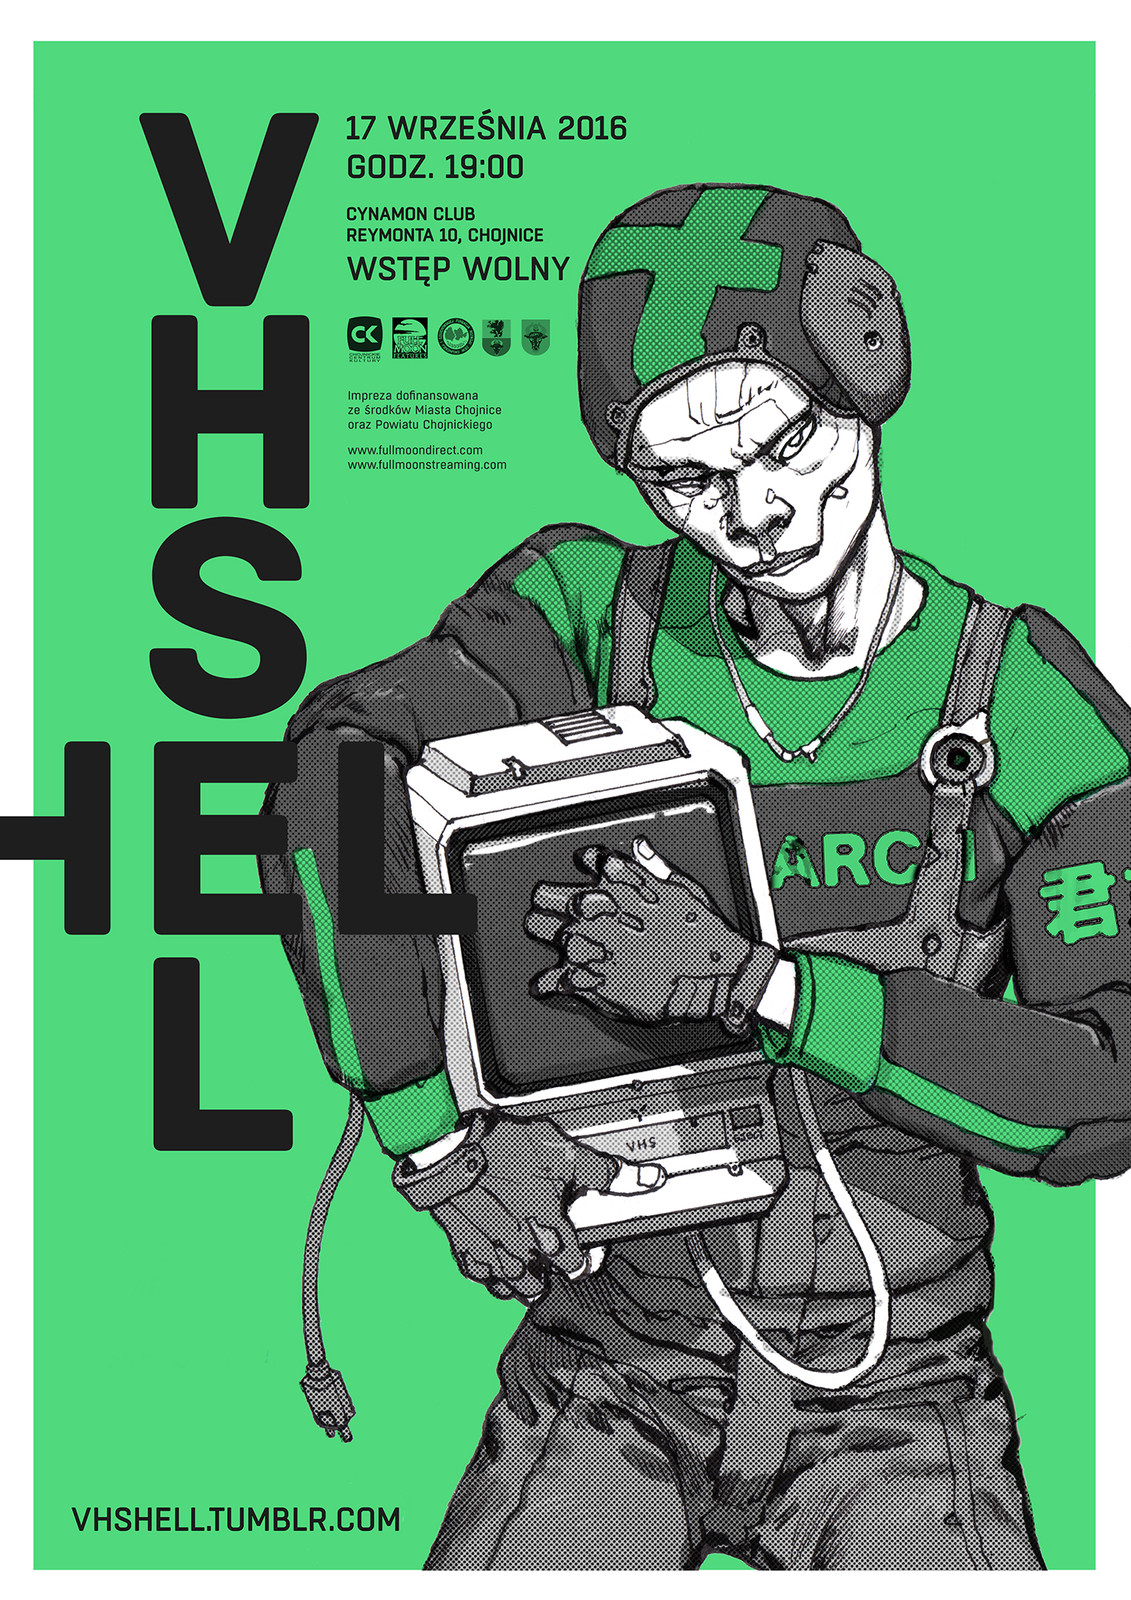 VHS HELL Poster